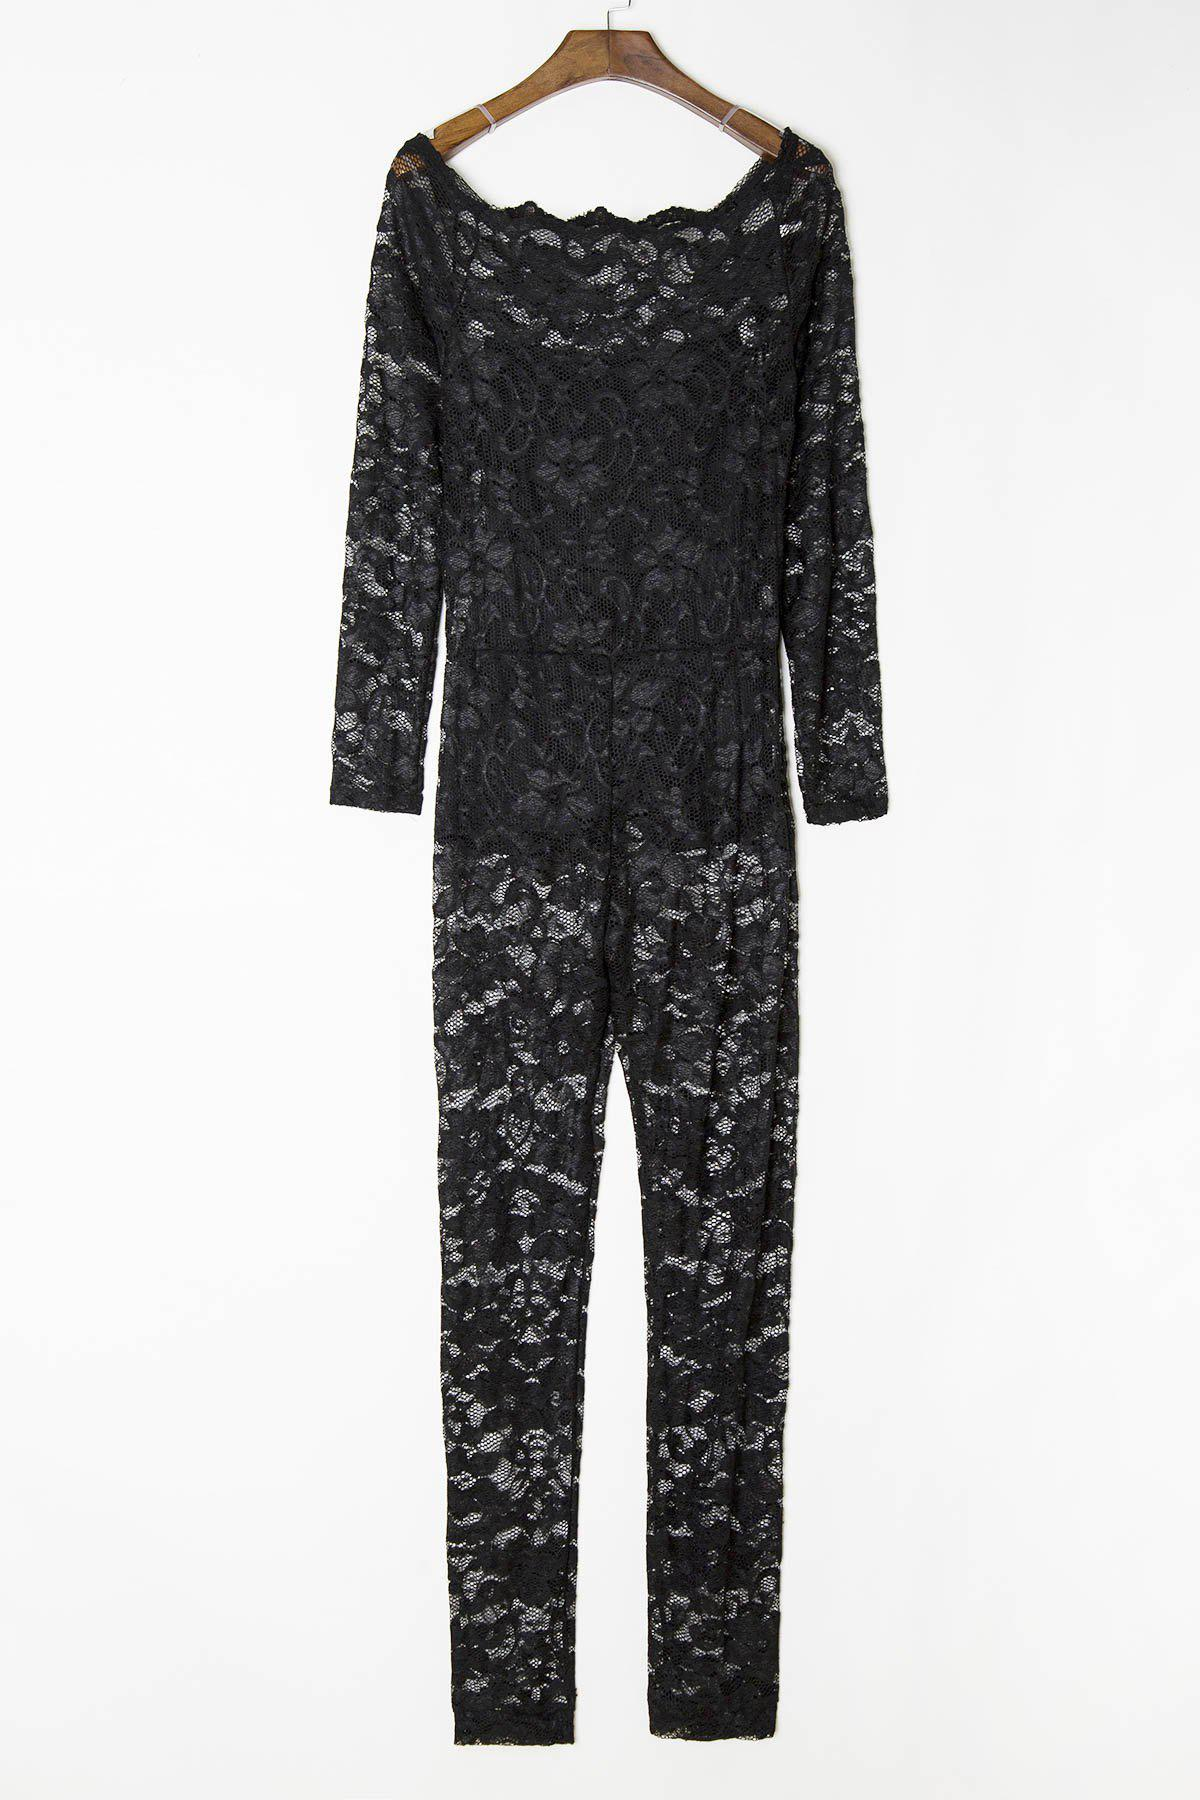 Discount Sexy Off-The-Shoulder Lace Hollow Out Long Sleeve Jumpsuit For Women